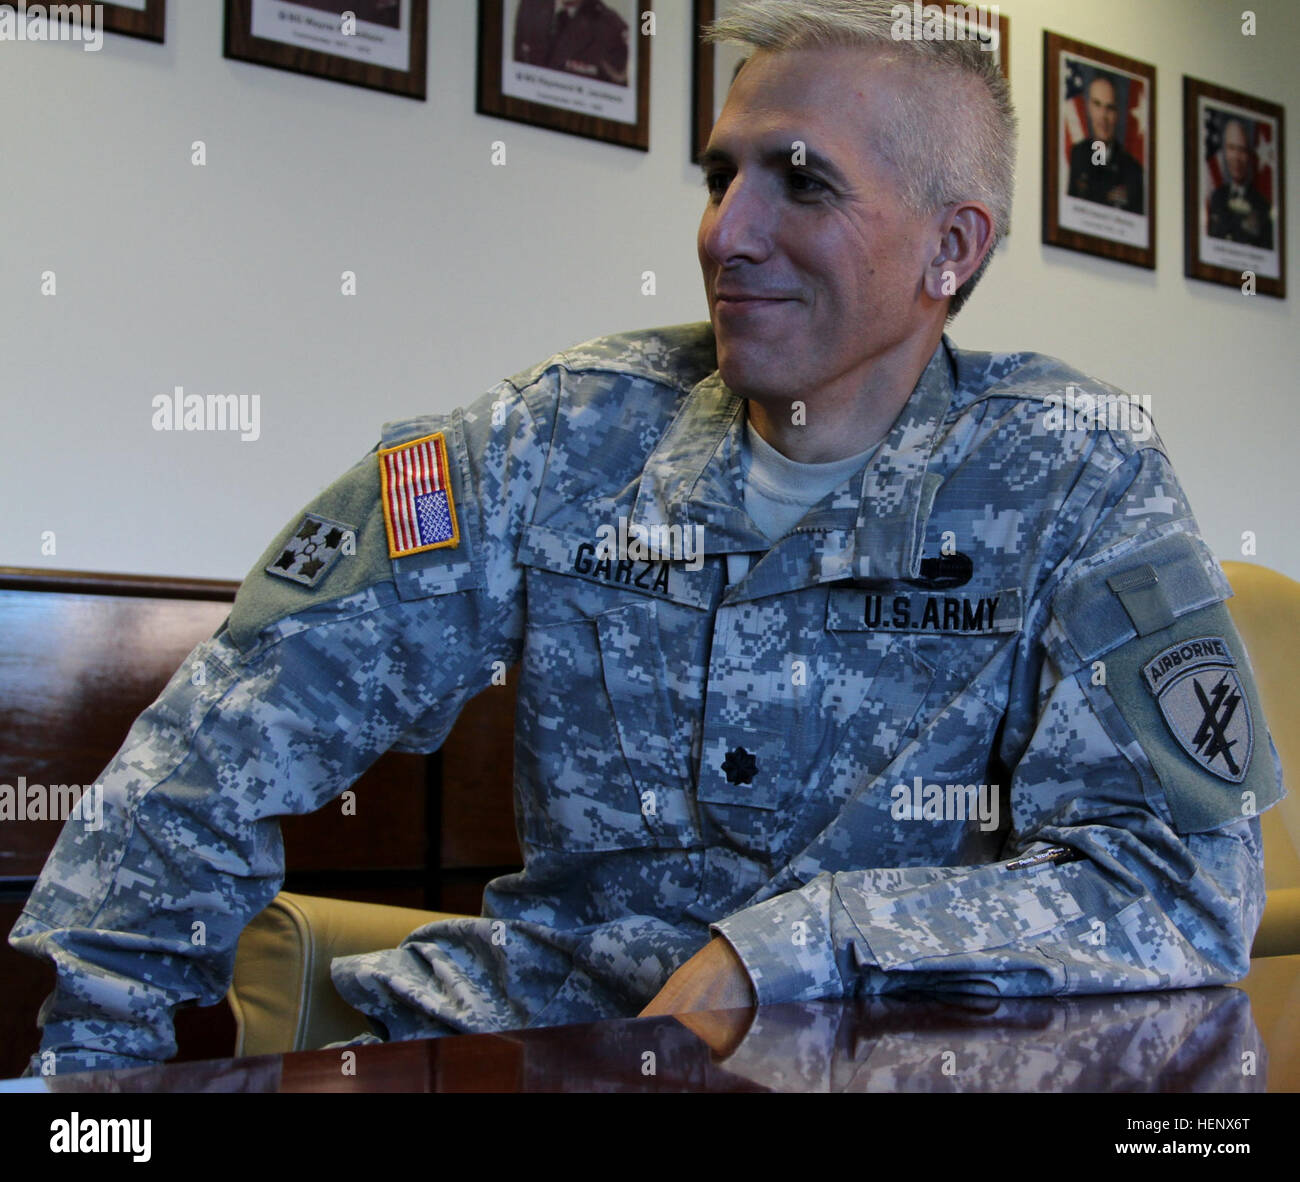 Dr. Alexander Garza reviews the successful Ebola briefs given to officers of the 352nd Civil Affairs Command.  The - Stock Image